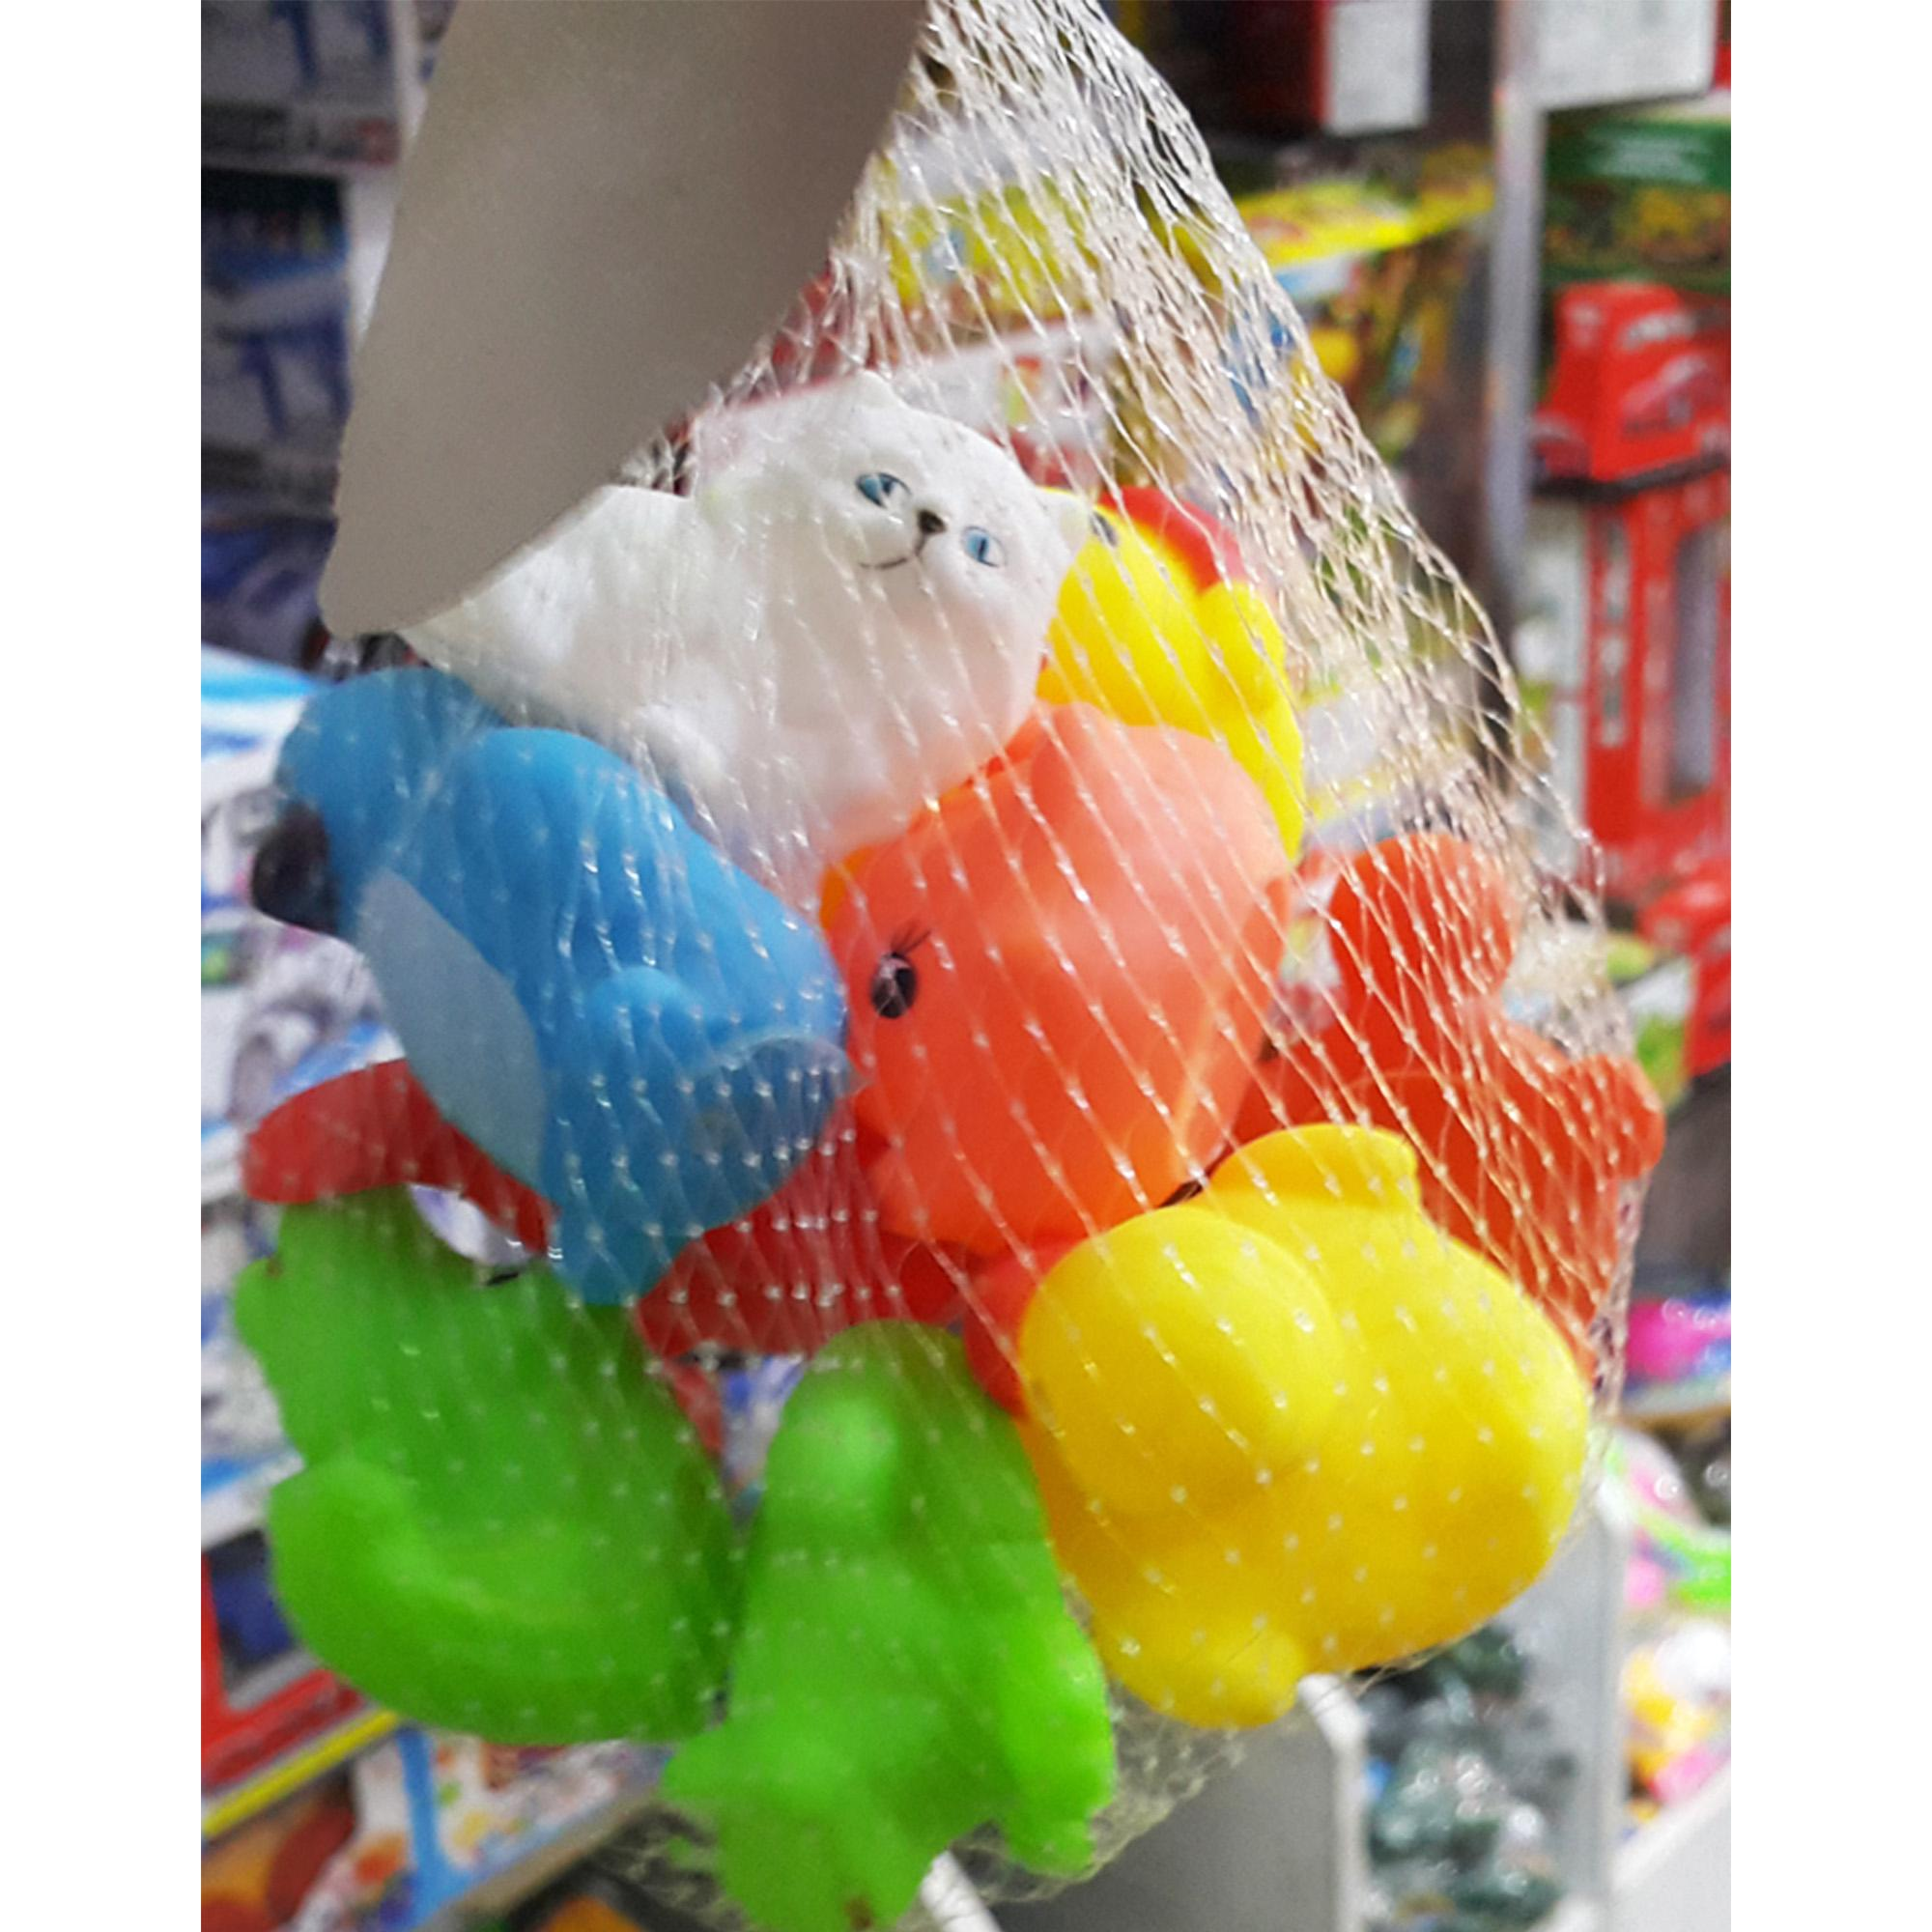 Cutest Squishy Toys/Whistle Rattle Packed in Net - NC